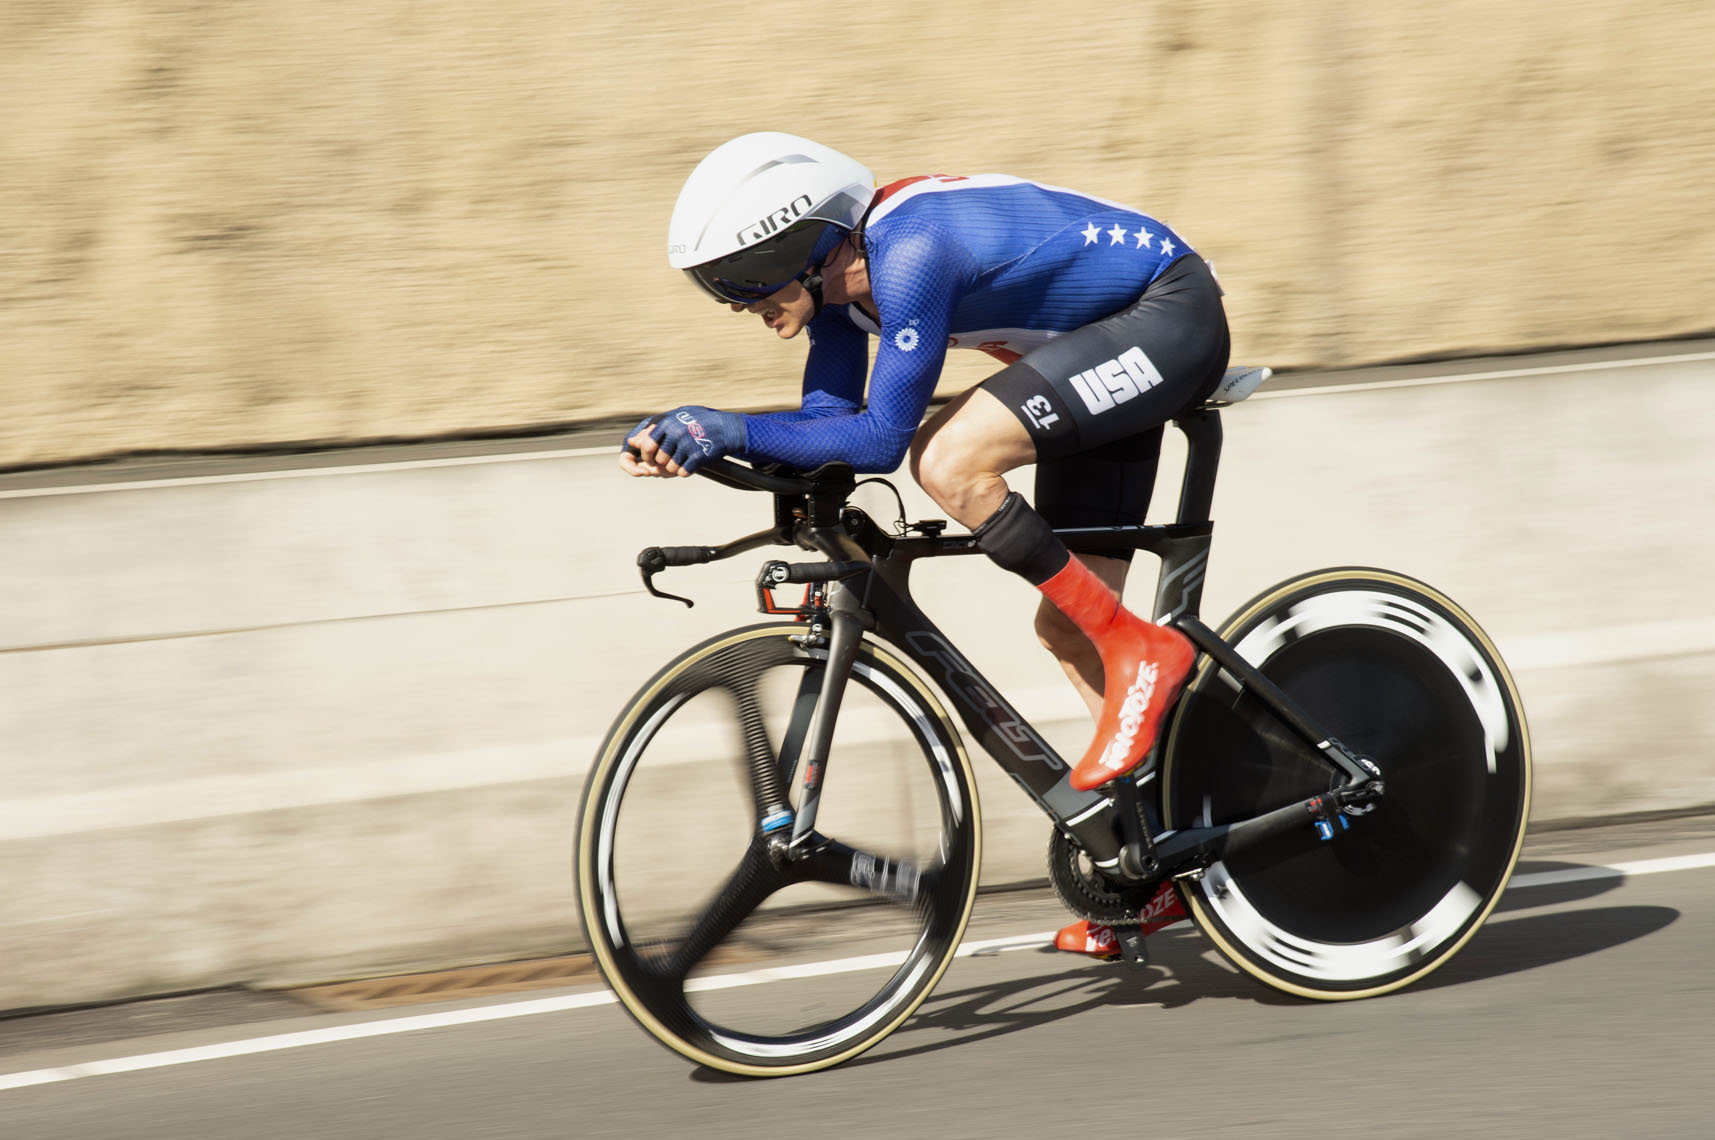 Aaron Kieth, 2019 Paracycling Road World Championships